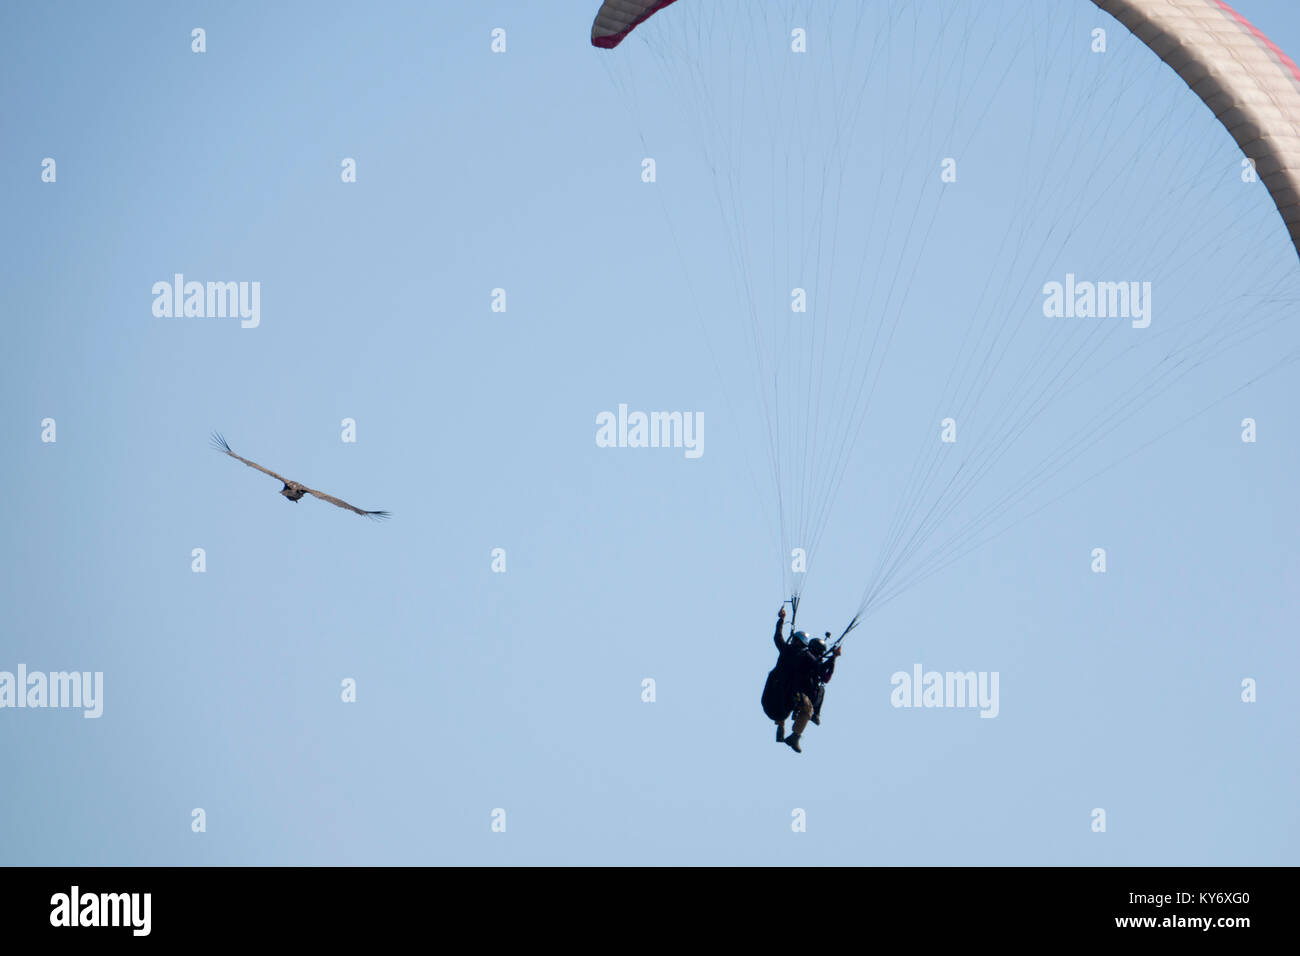 Tandem paragliding next to Egyptian Vulture above Pokhara, Nepal - Stock Image